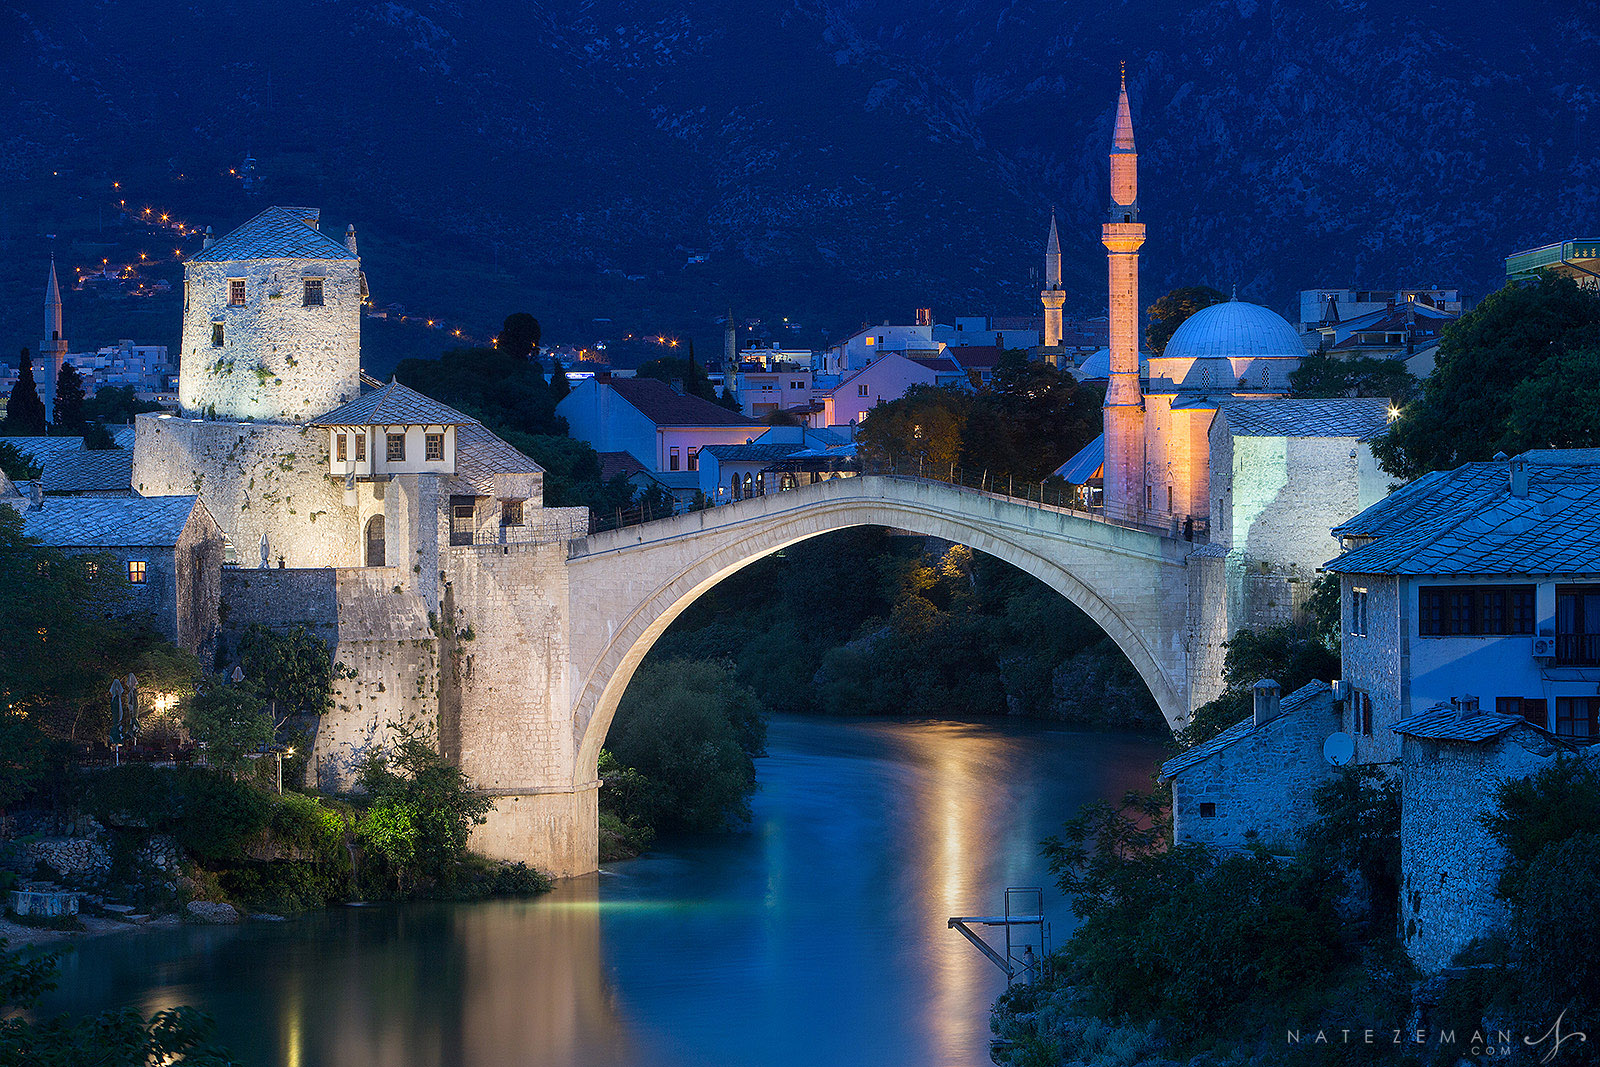 stari most, mostar, bosnia, bosnia and herzigovina, night, war, bridge,  neretva, river, , photo